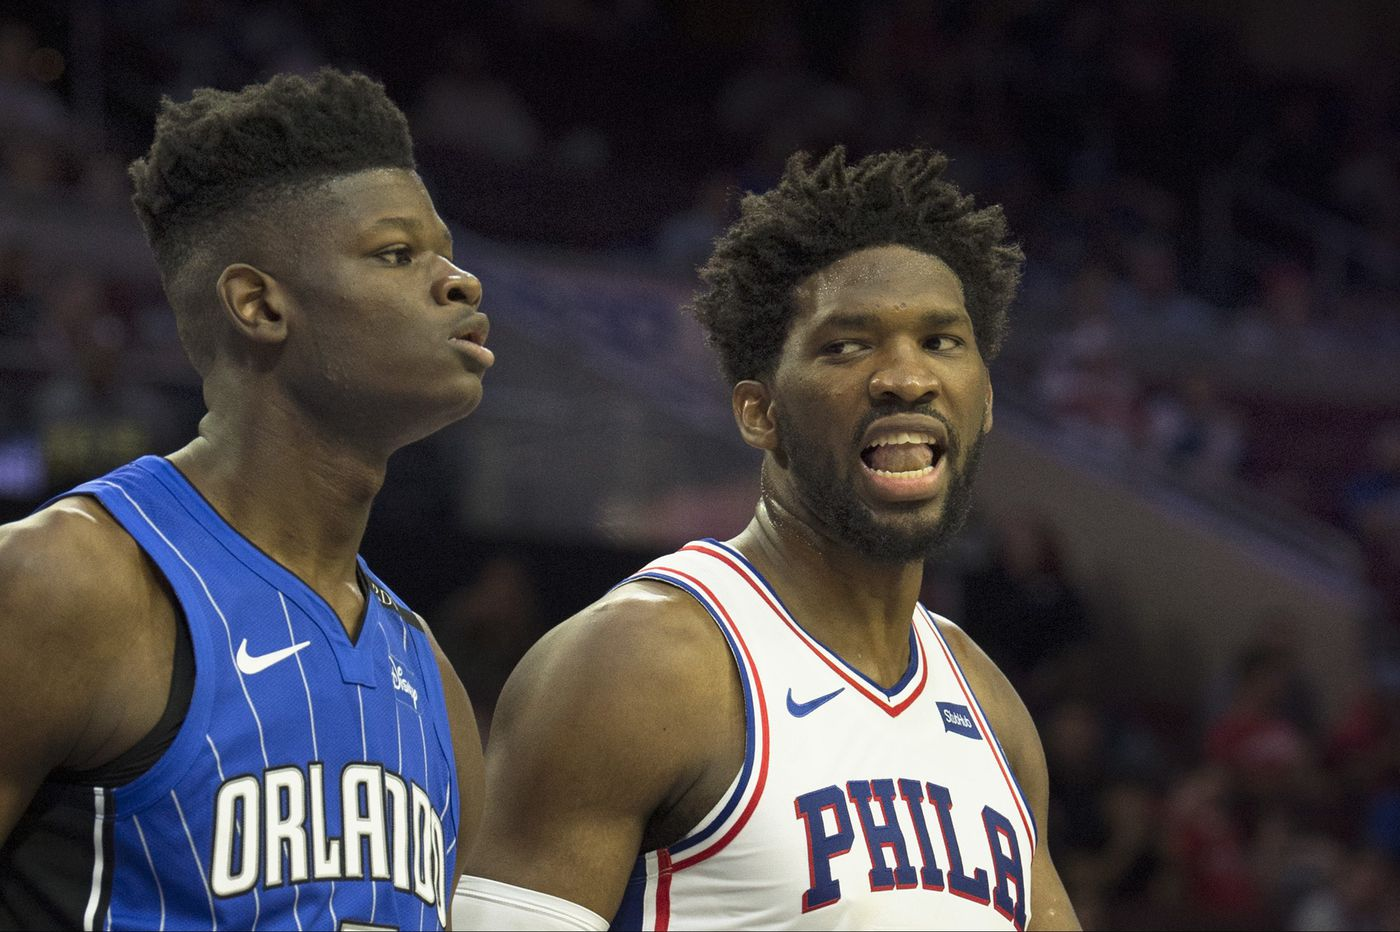 In first NBA game, Magic rookie and Westtown grad Mohamed Bamba faced mentor Joel Embiid